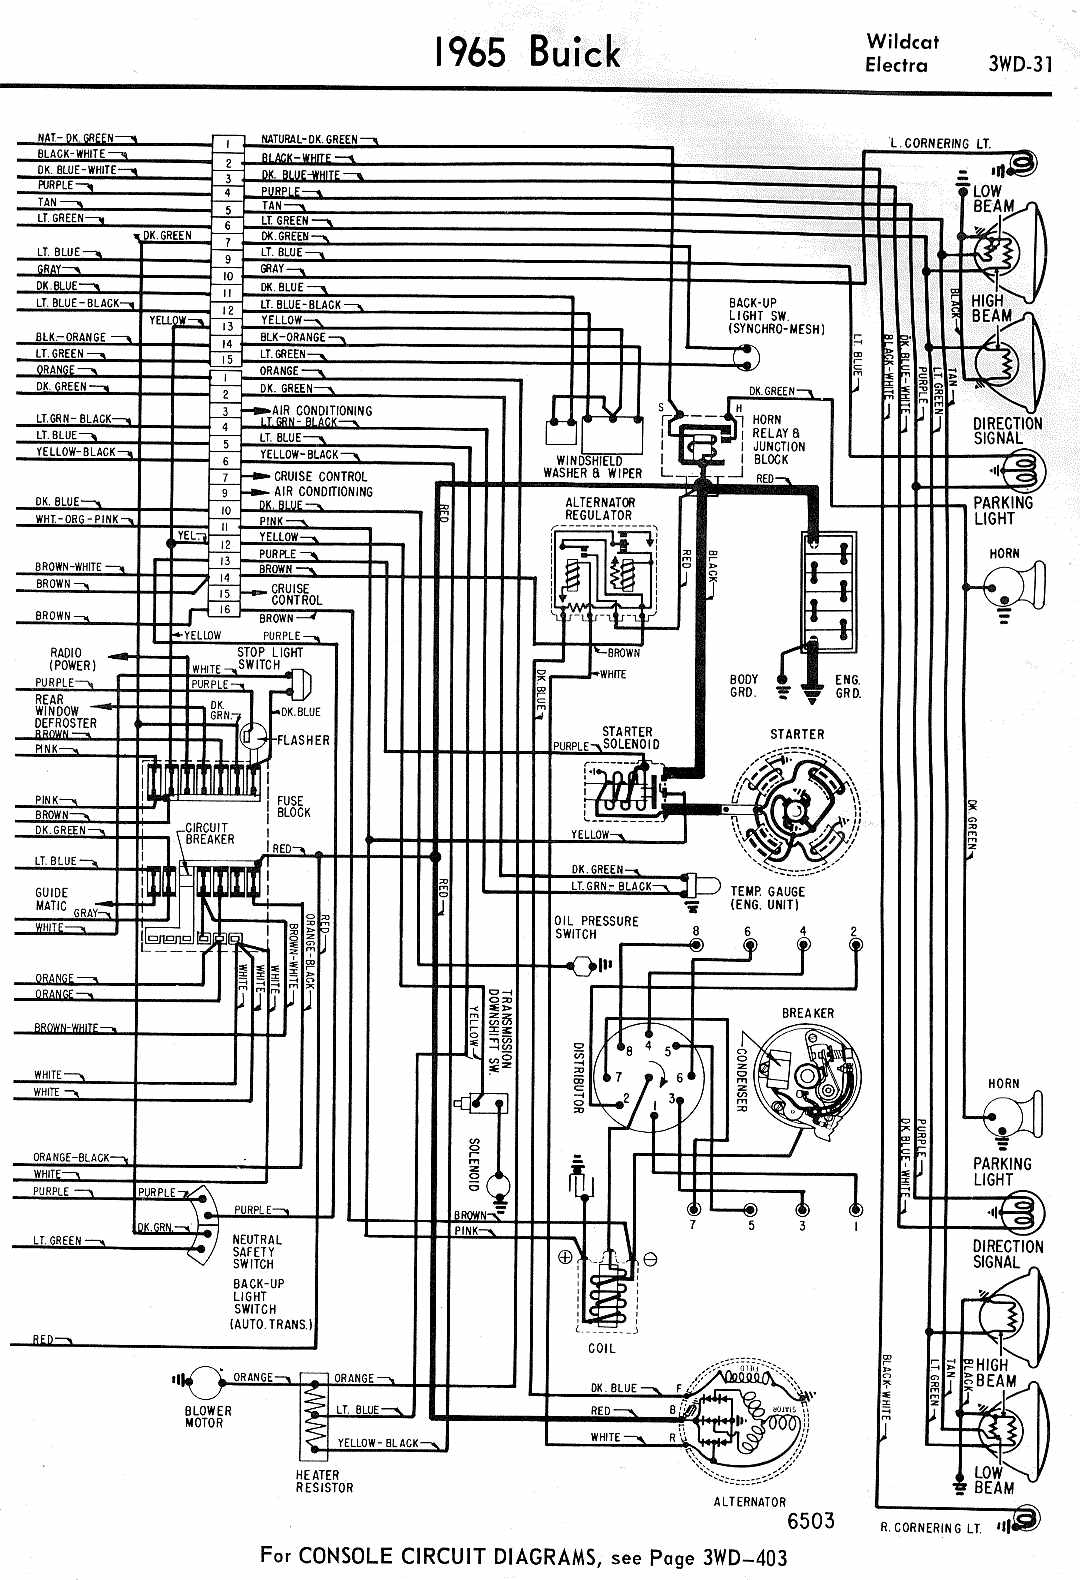 1967 1972 Chevy Truck On 1970 Chevy Nova Wiring Diagram Besides 1967